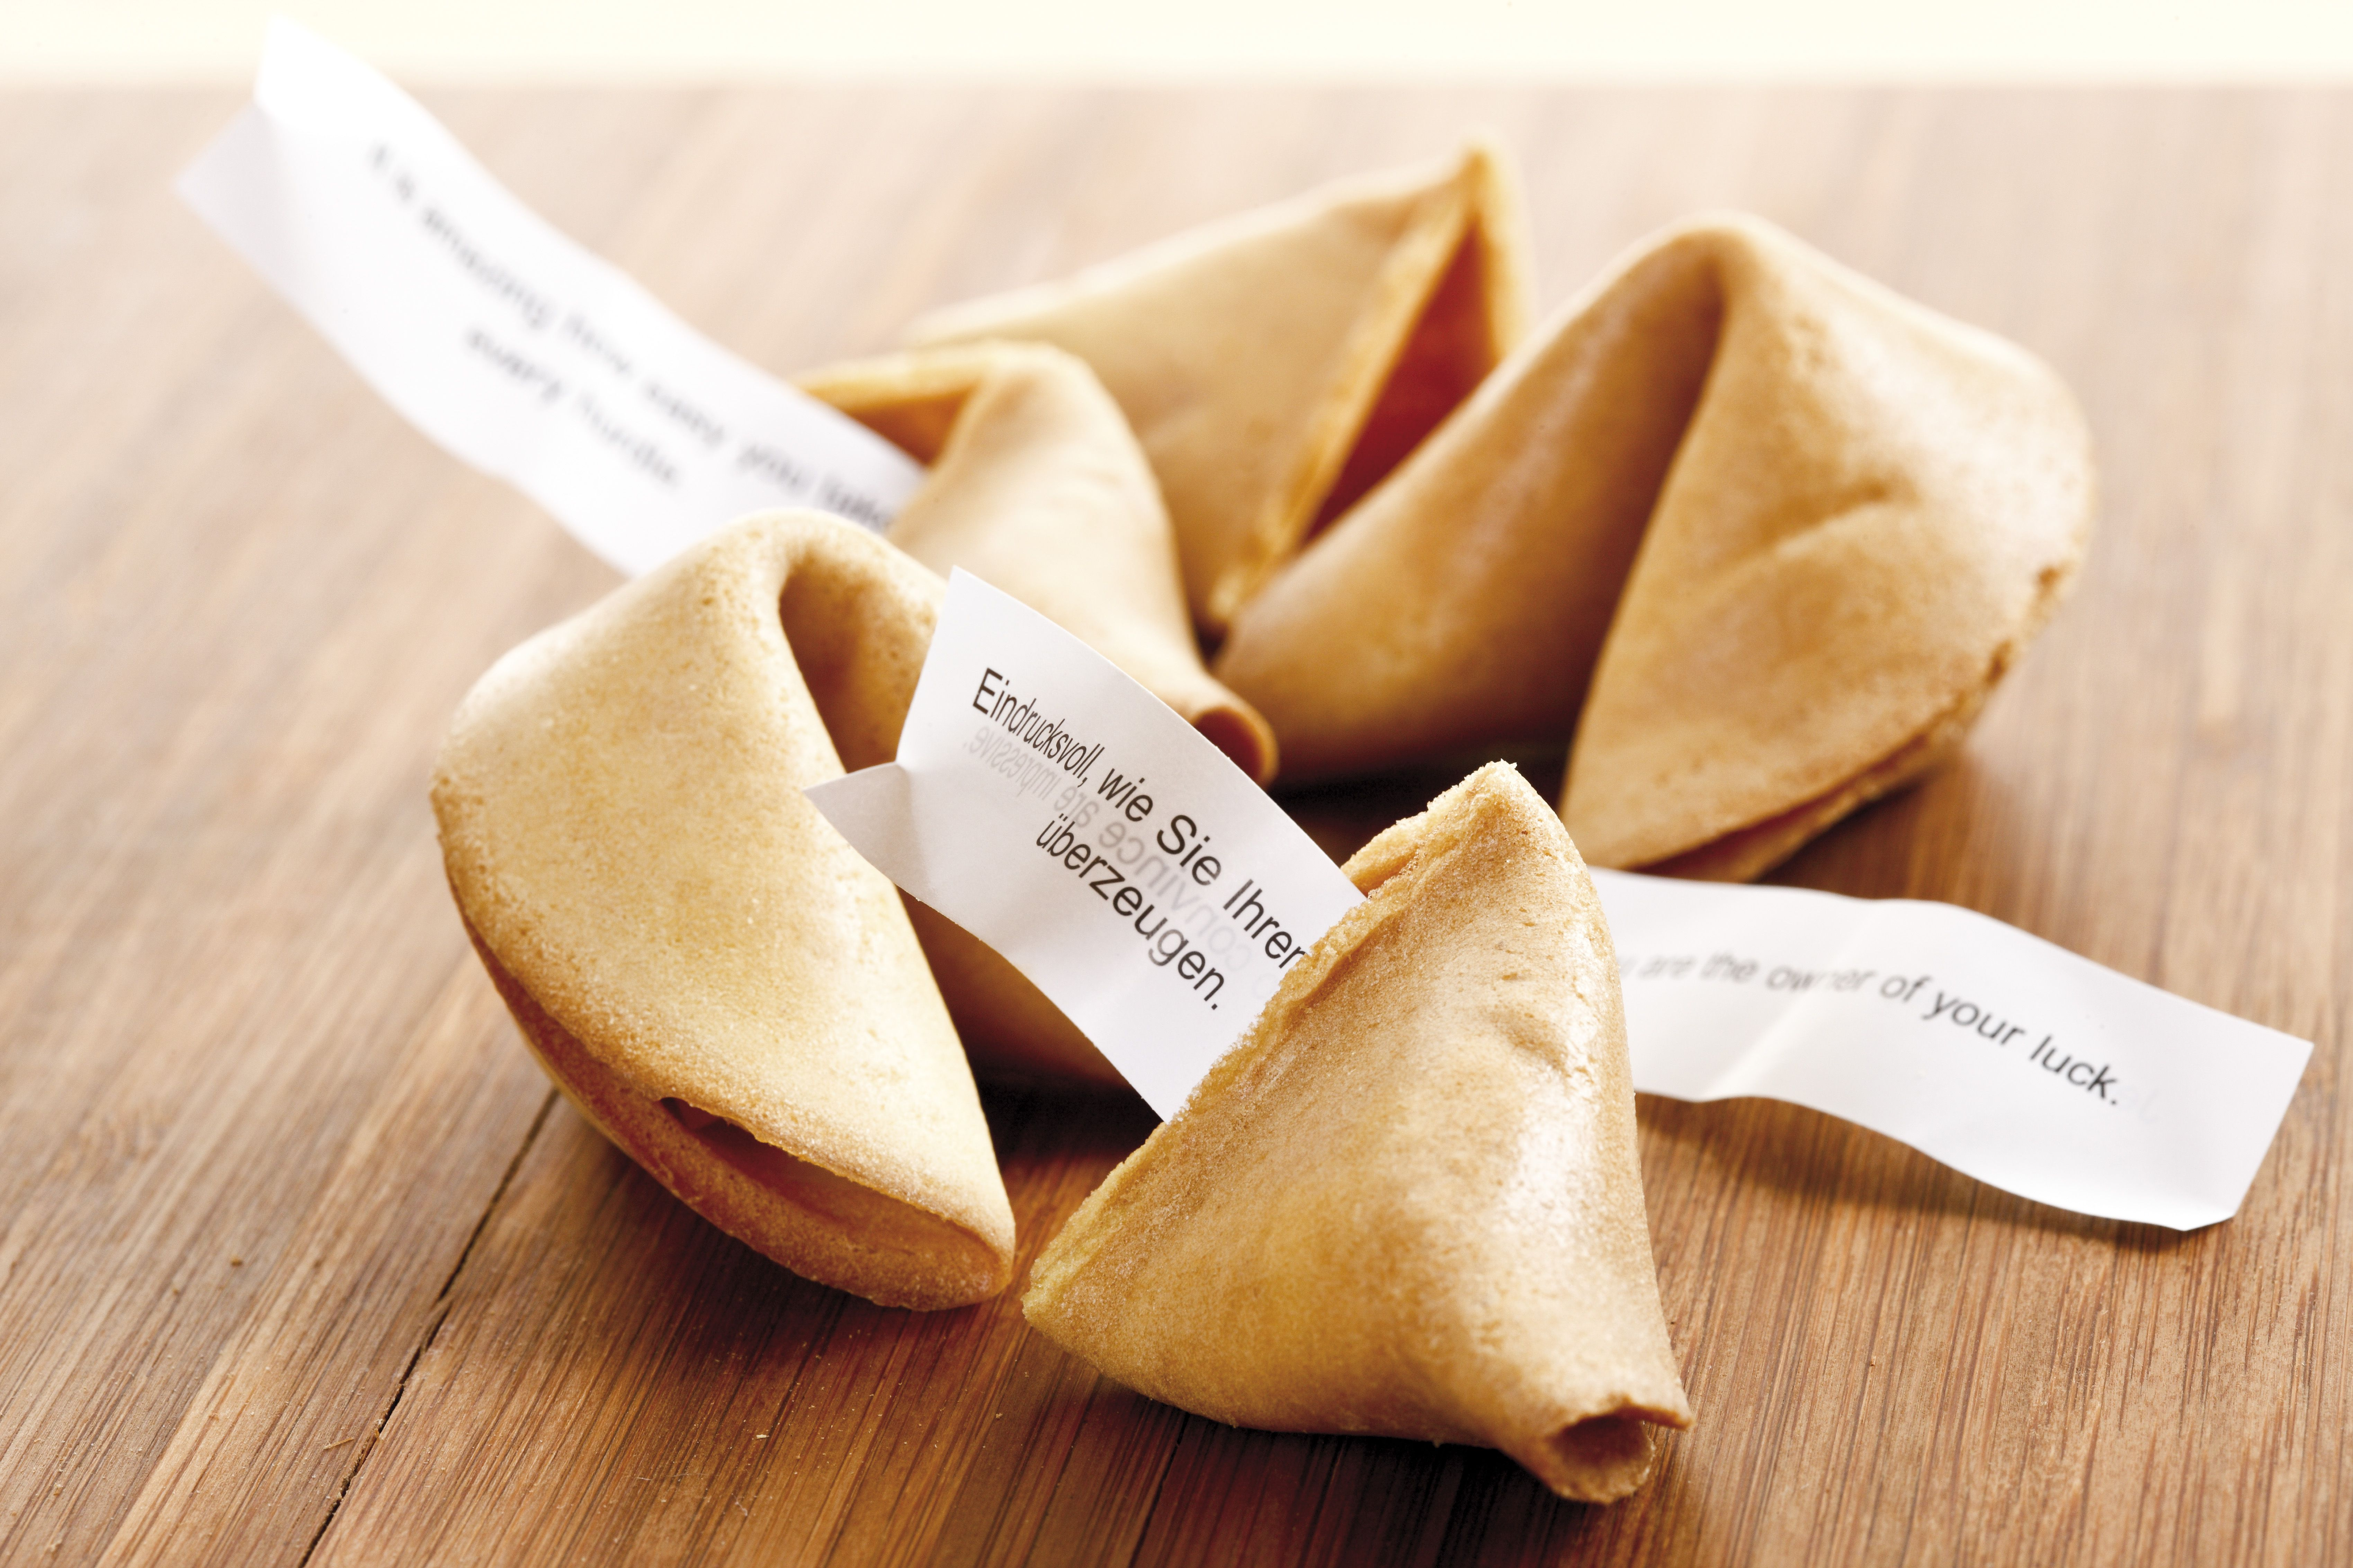 fortune cookie essays I believe in fortune cookies the sealed plastic which holds captive a biscuit styled cookie that has a small, printed message about the future with any random word in chinese on the other side.